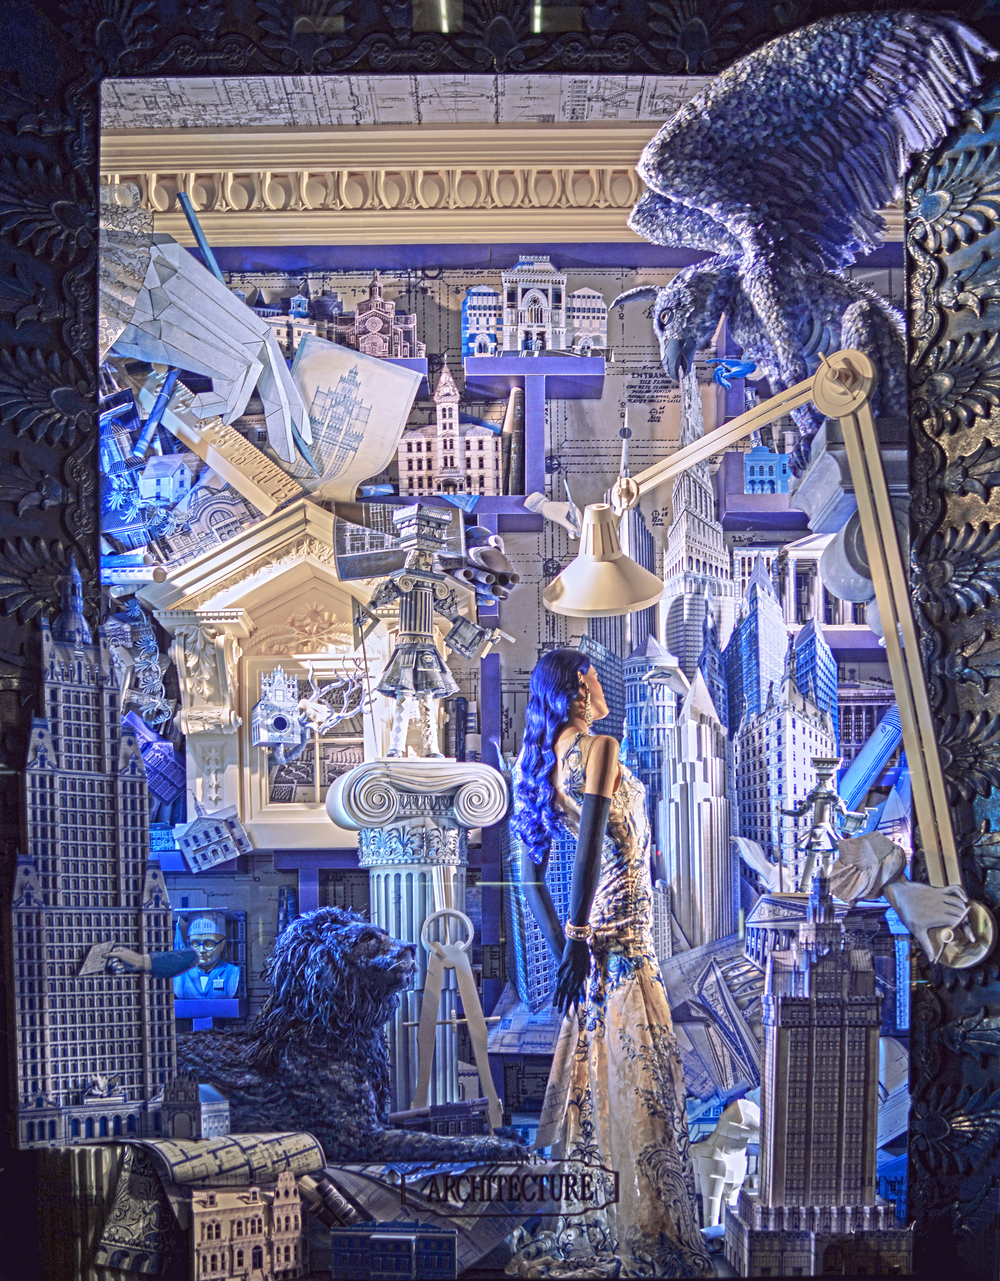 Bergdorf Goodman Window Display - Architecture | Lauren Caron © 2014